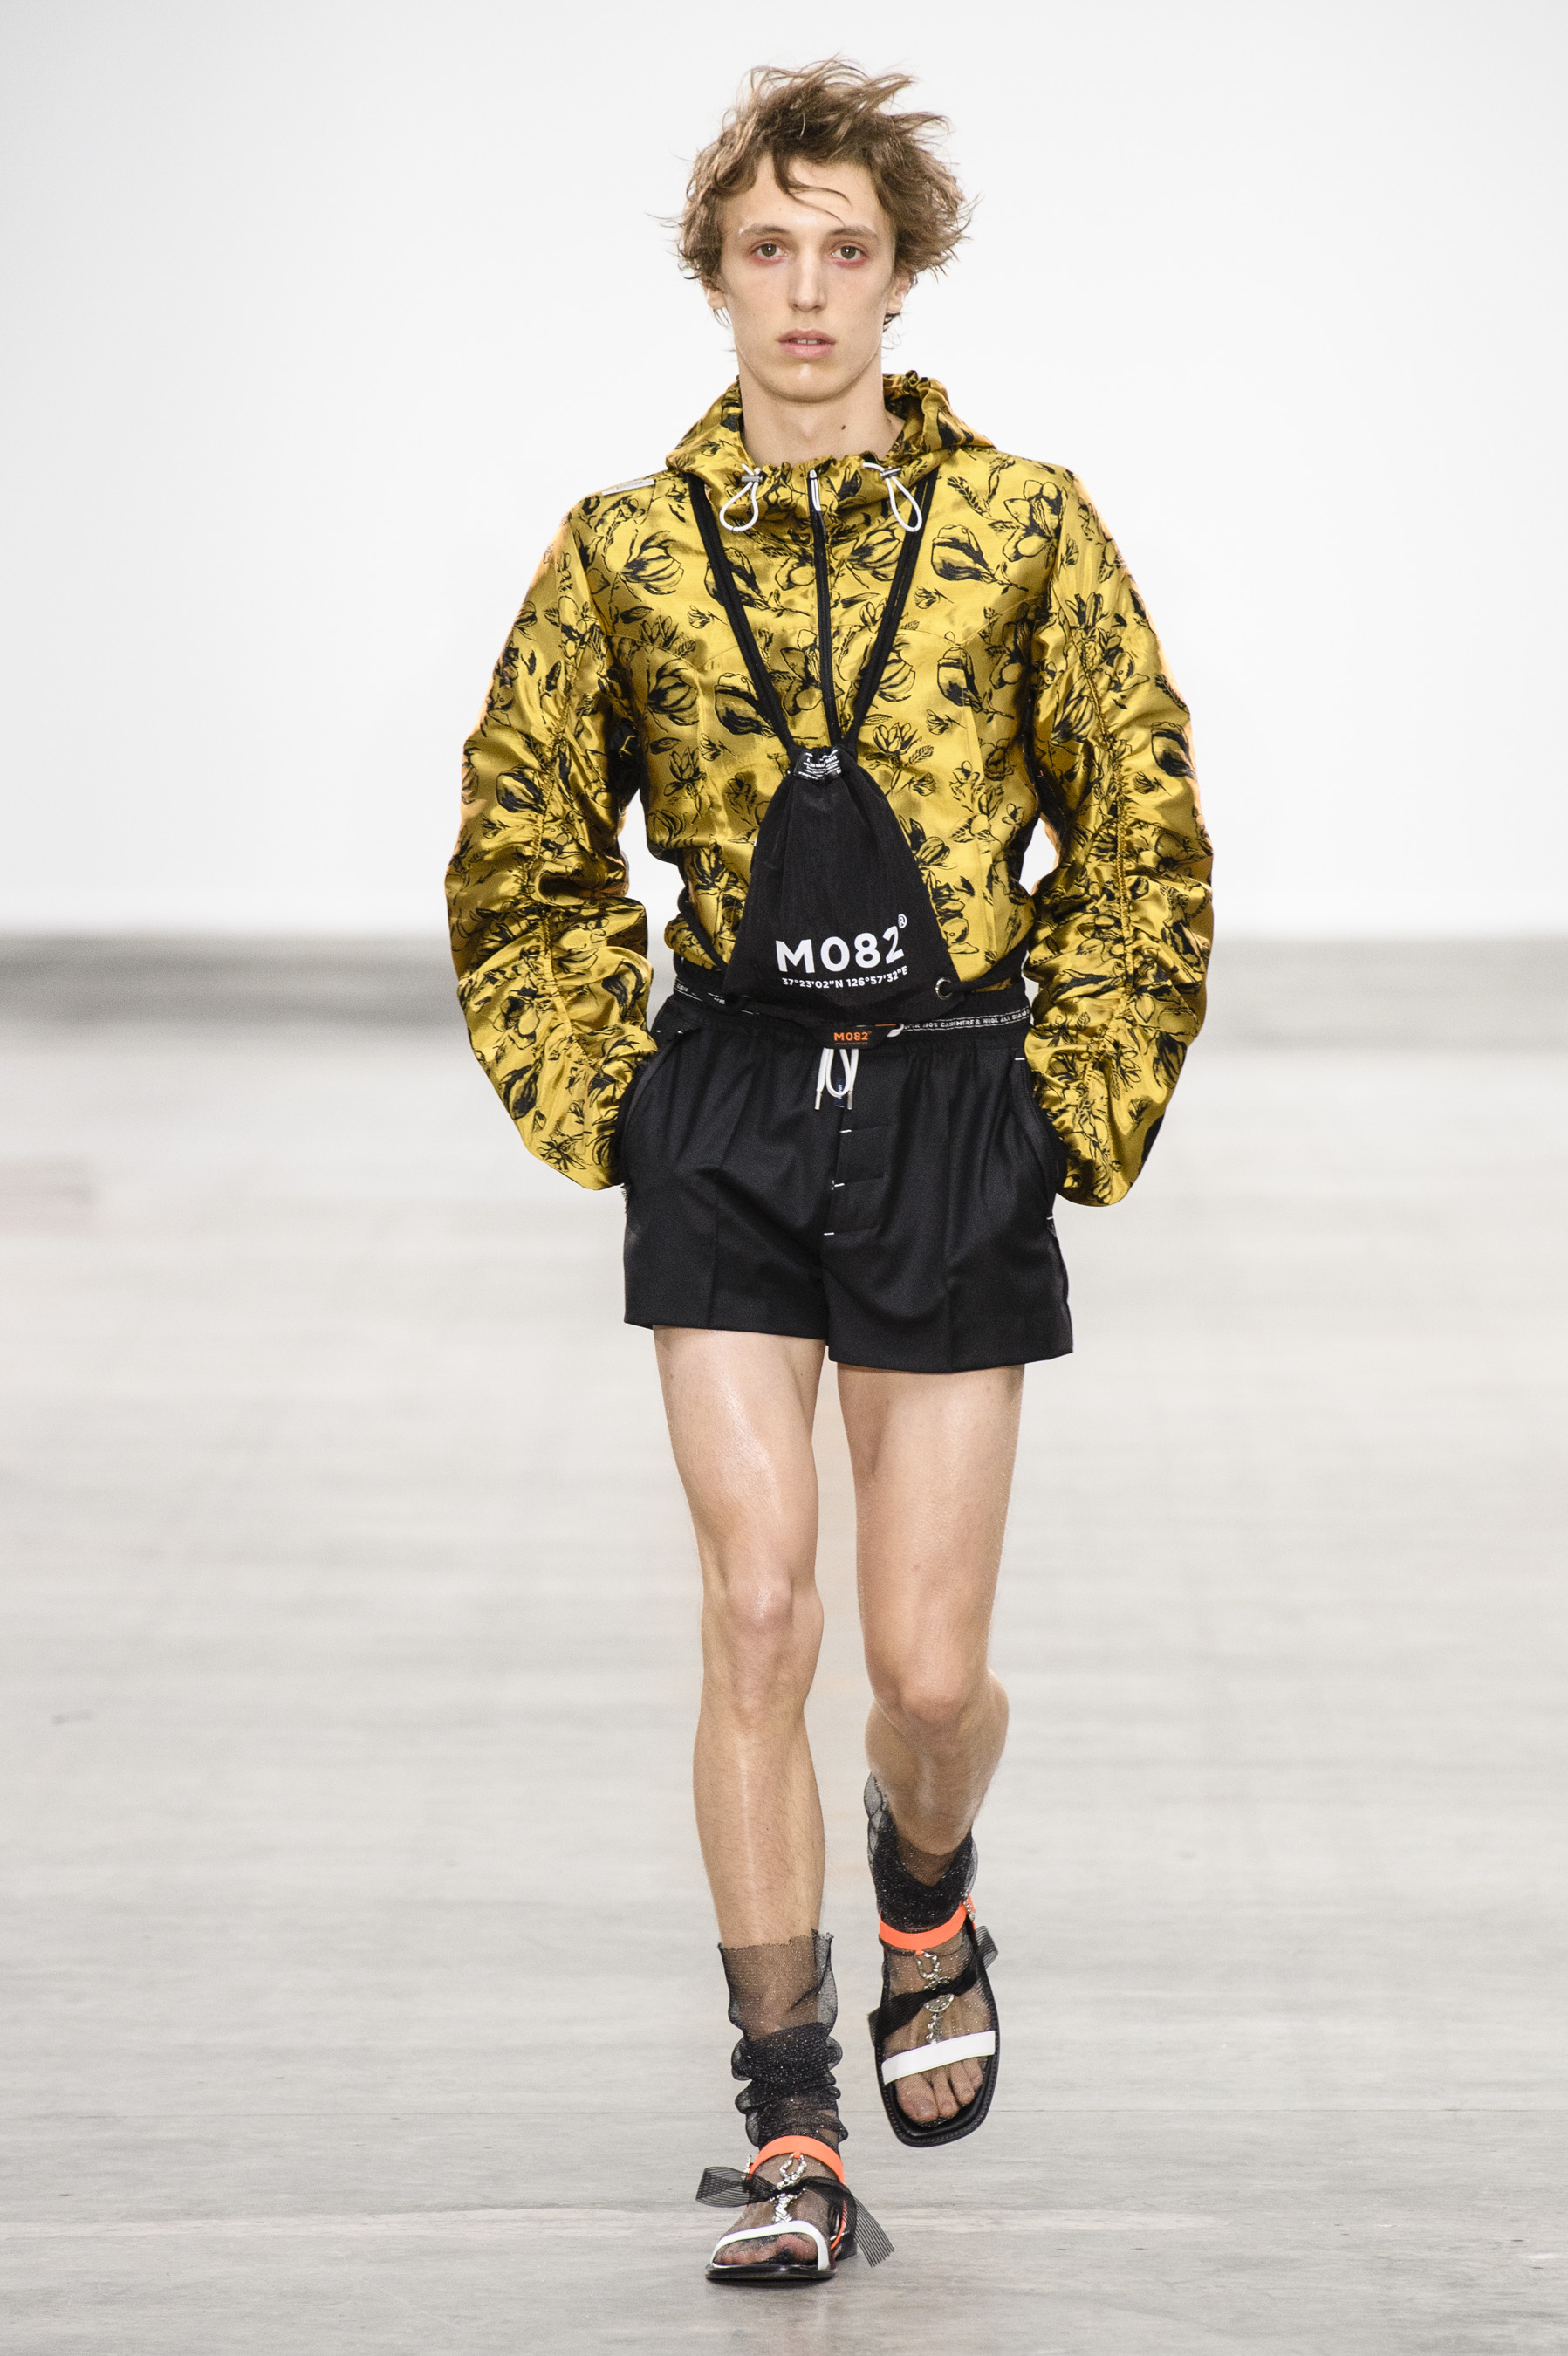 Munn Spring 2020 Men's Fashion Show